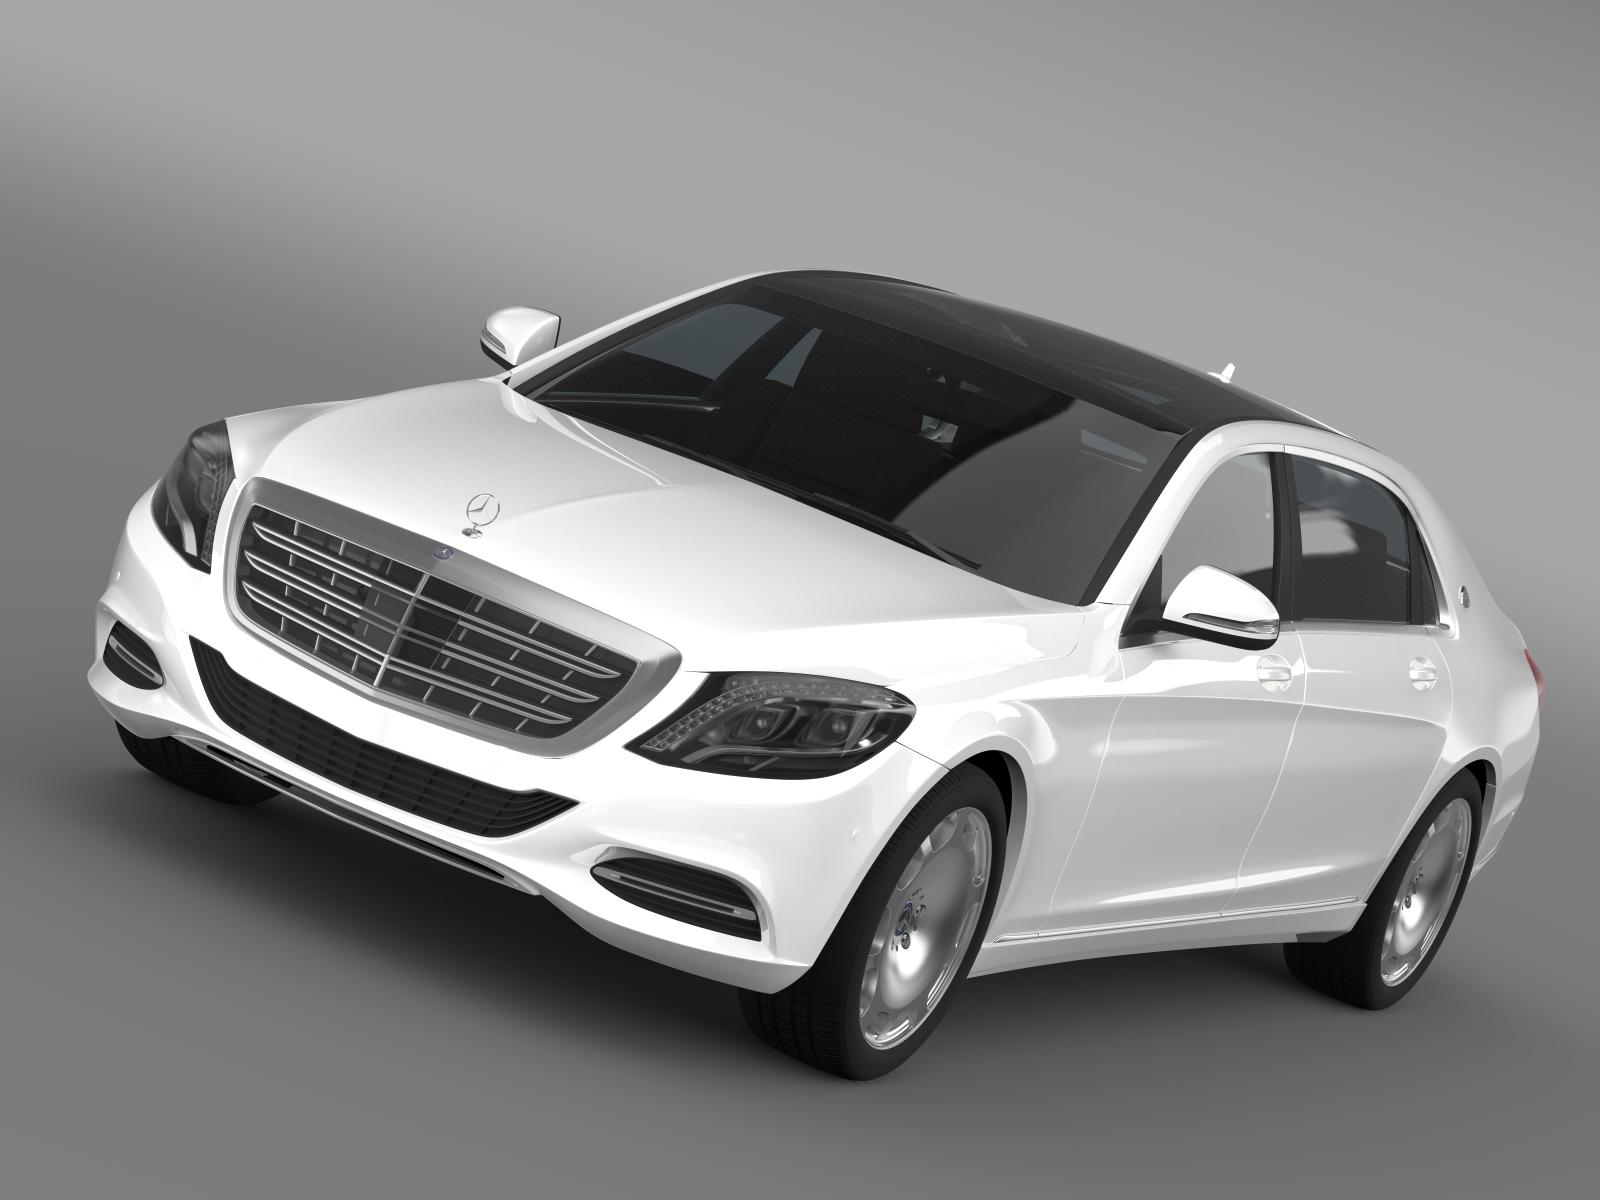 mercedes maybach s500 x222 2015 3d model 3ds max fbx c4d lwo ma mb hrc xsi obj 166132